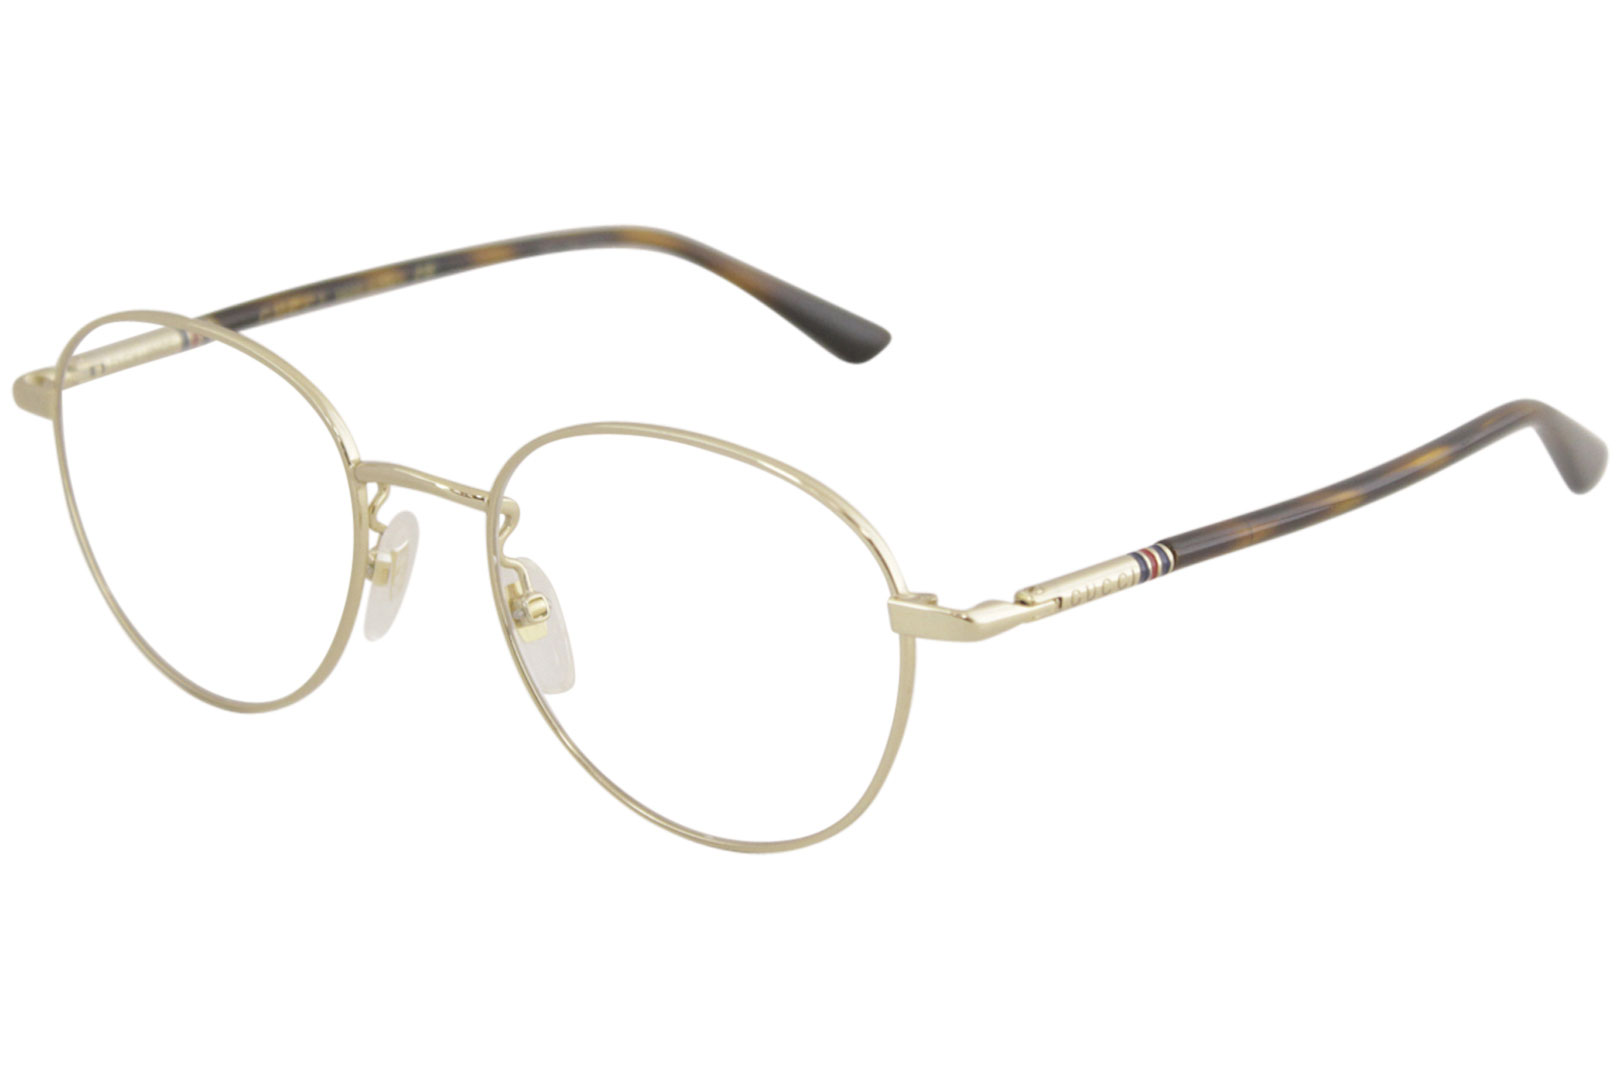 c97a17468fd Gucci Men s Eyeglasses GG0392O GG 0392 O 003 Gold Havana Optical ...